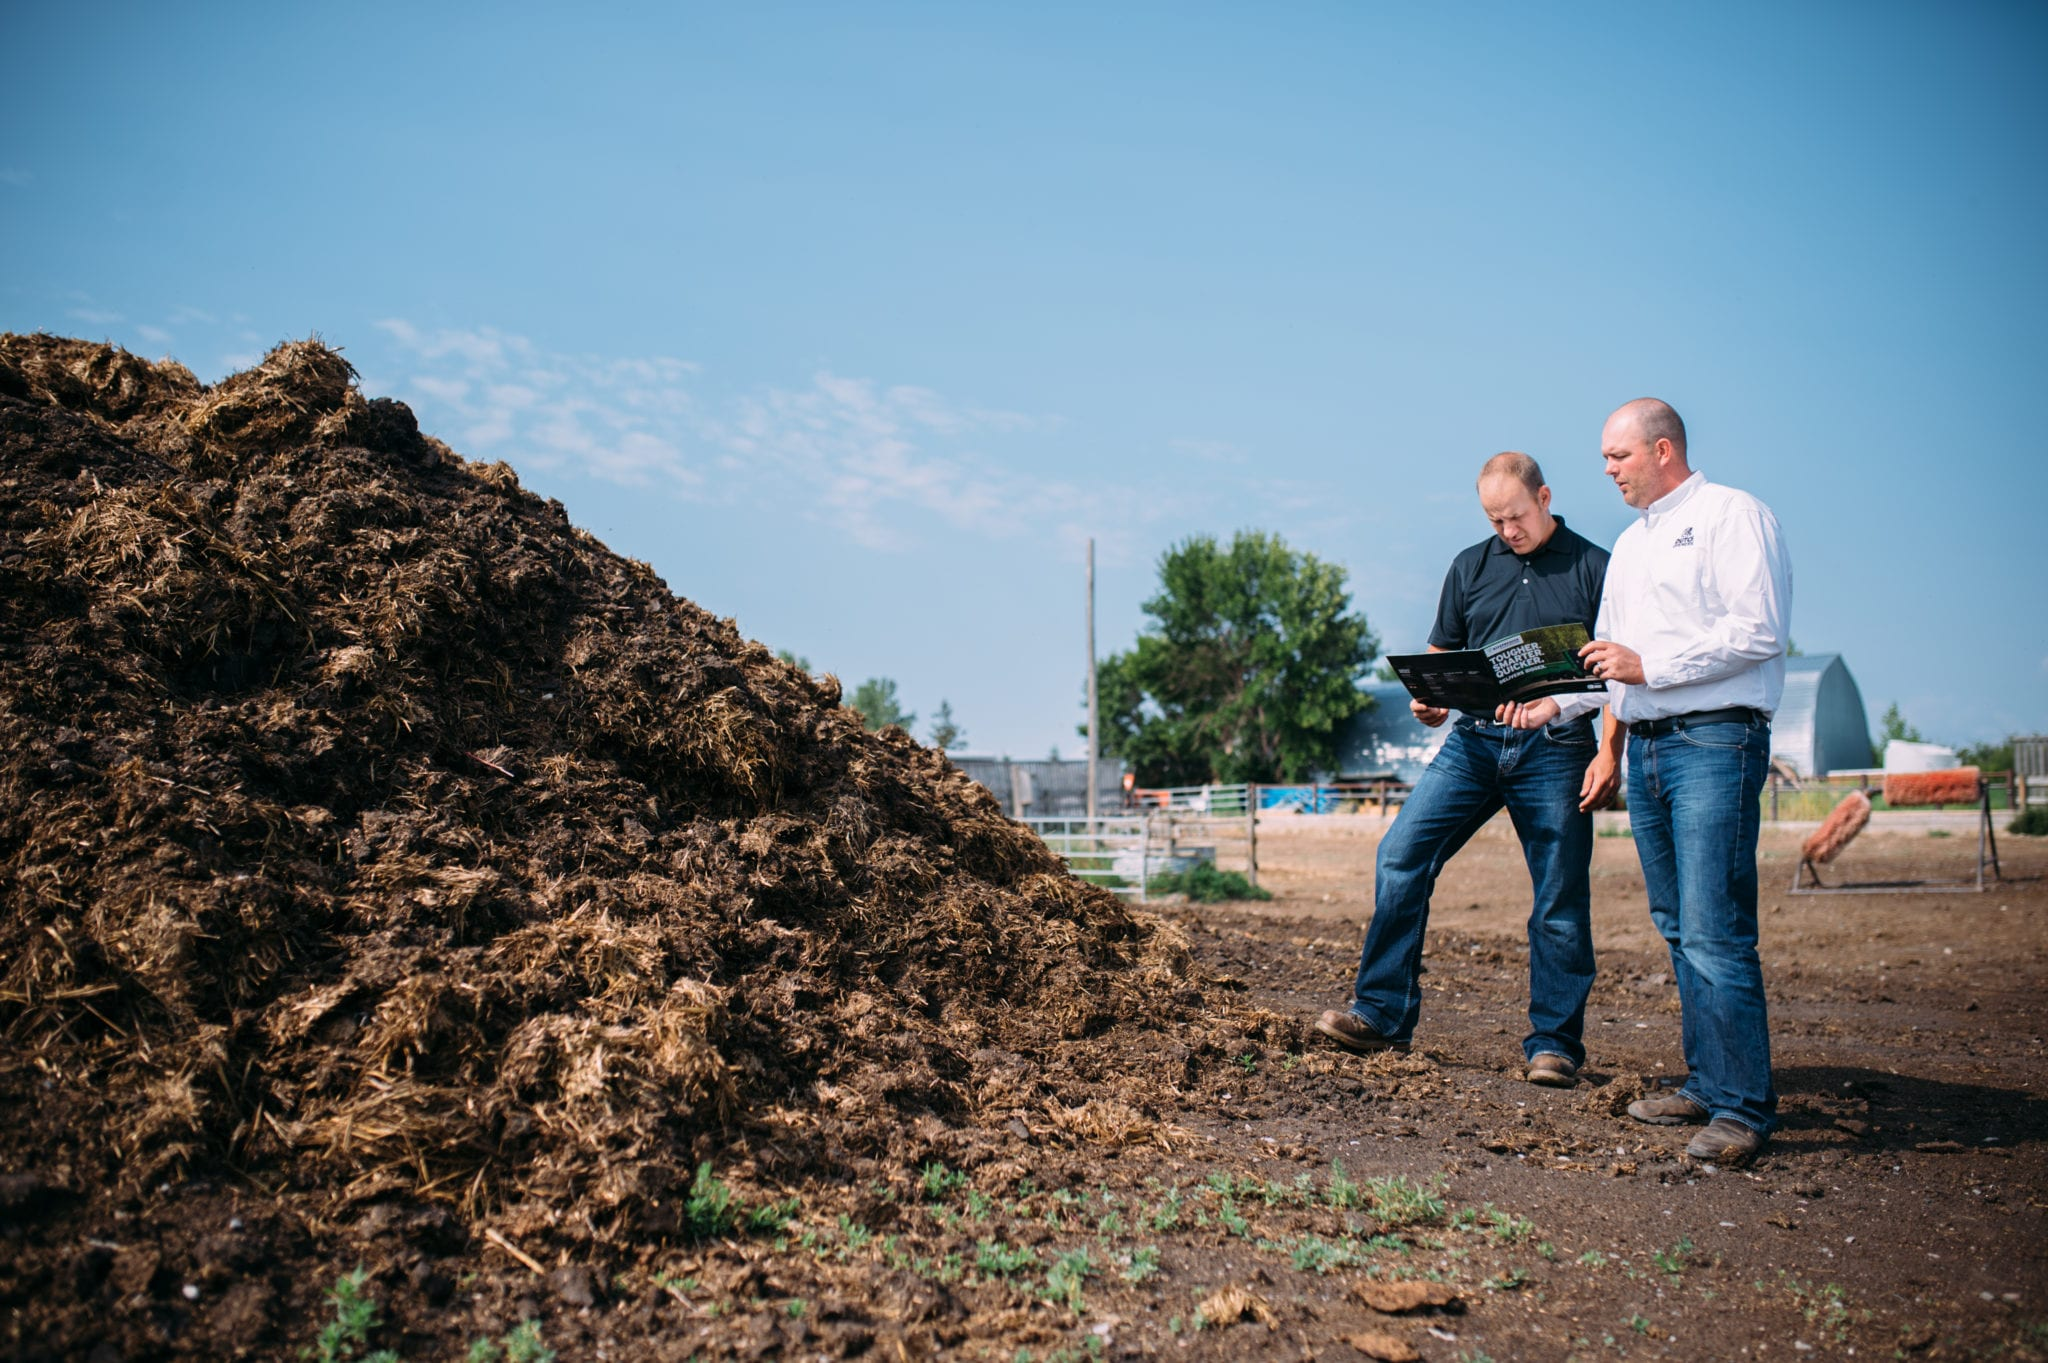 Two male farmers observing a pile of manure